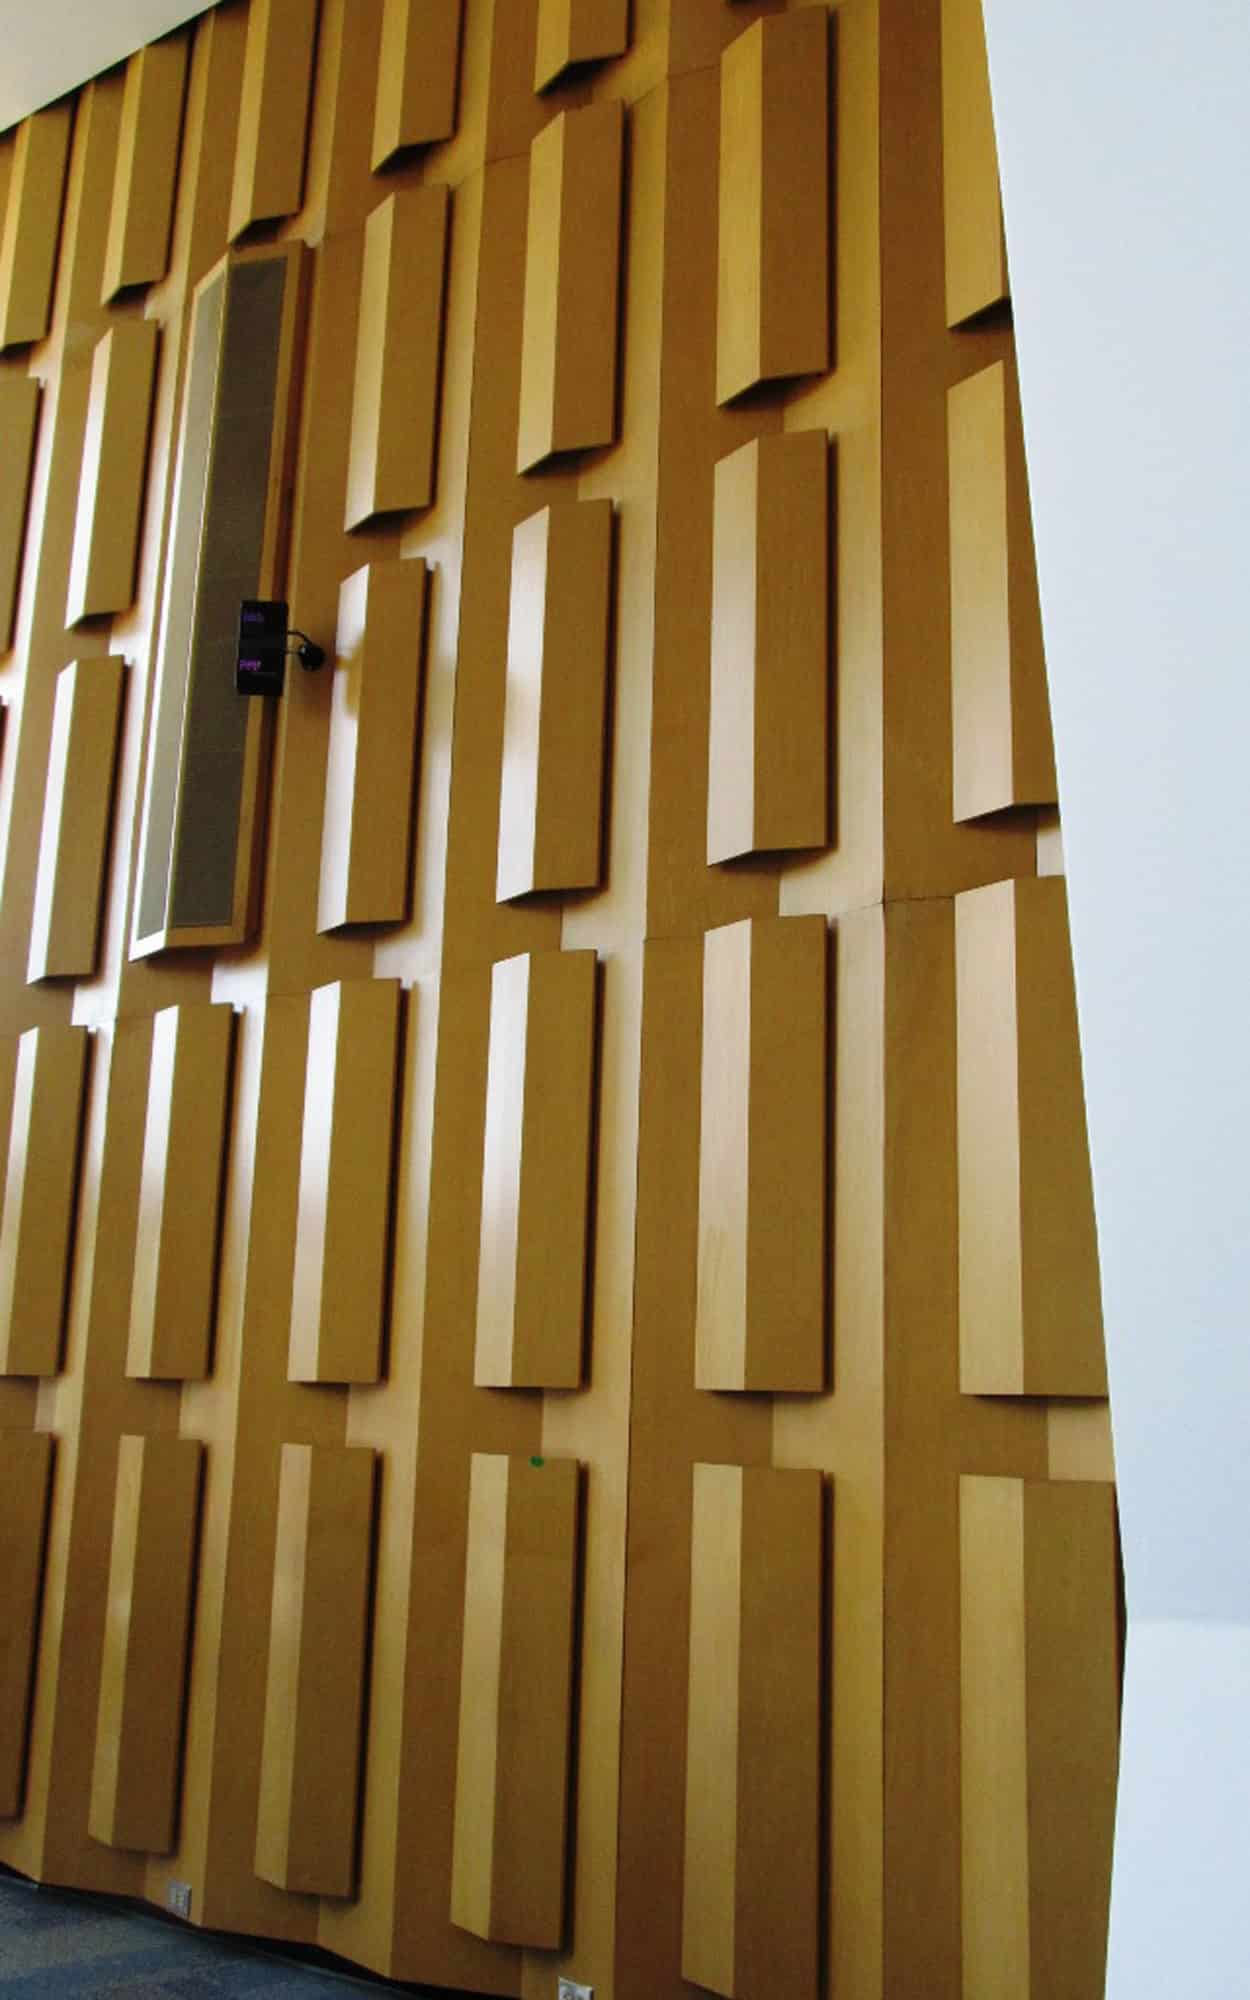 Council chamber sound baffles (maple) - these are a signature design detail of Johnson's